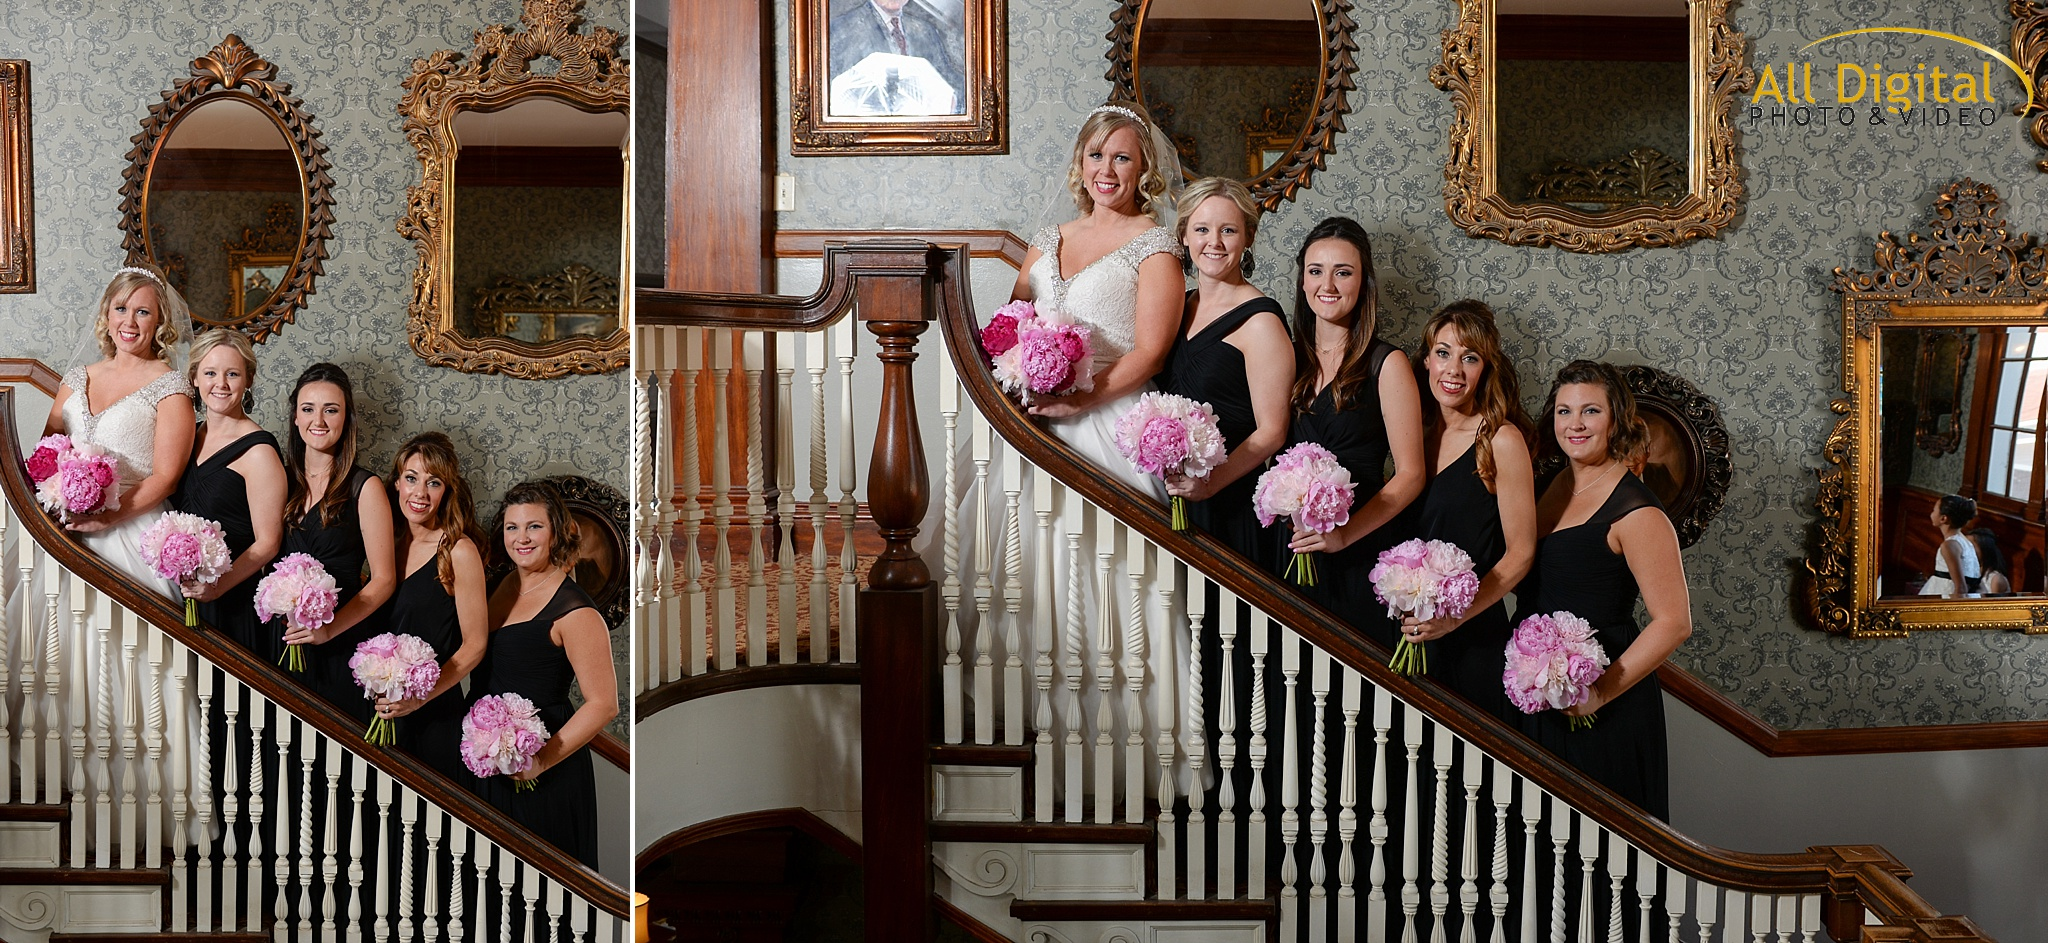 Bride & Bridesmaid portraits at the Stanley Hotel in Estes Park, Colorado